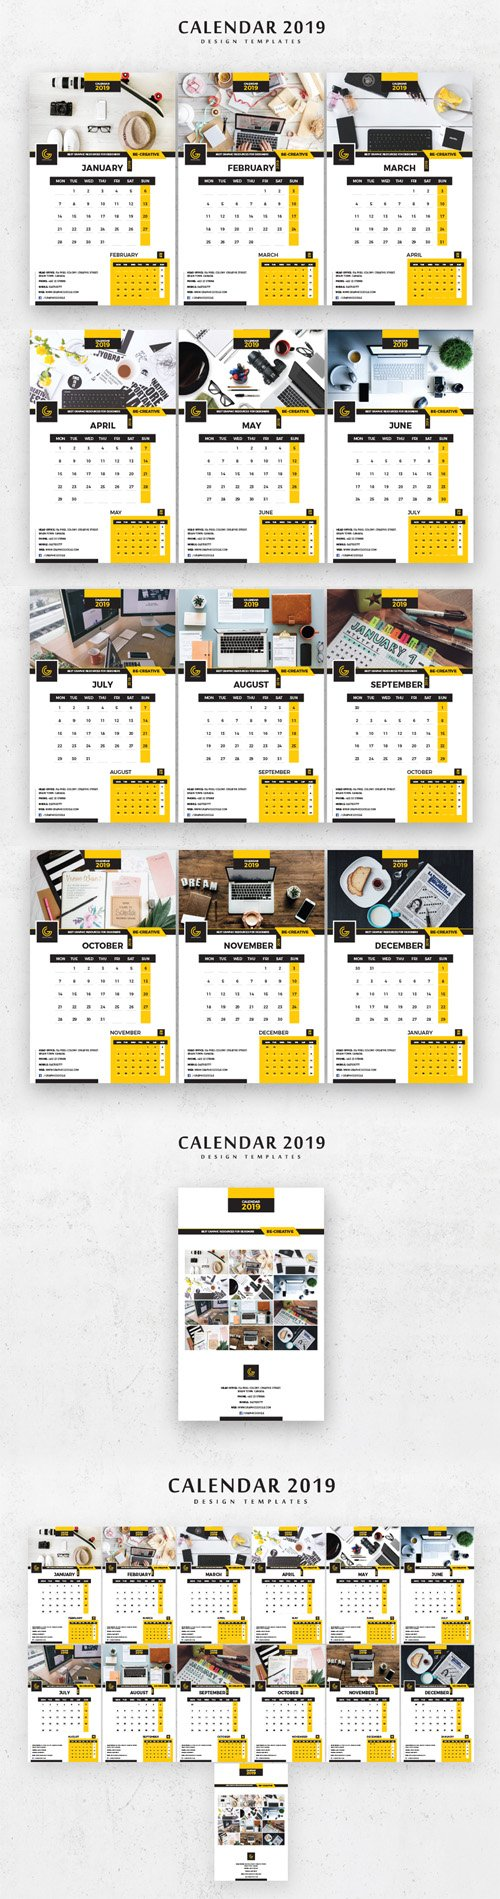 2019 Calendar Design Templates in Vector - 13 Pages